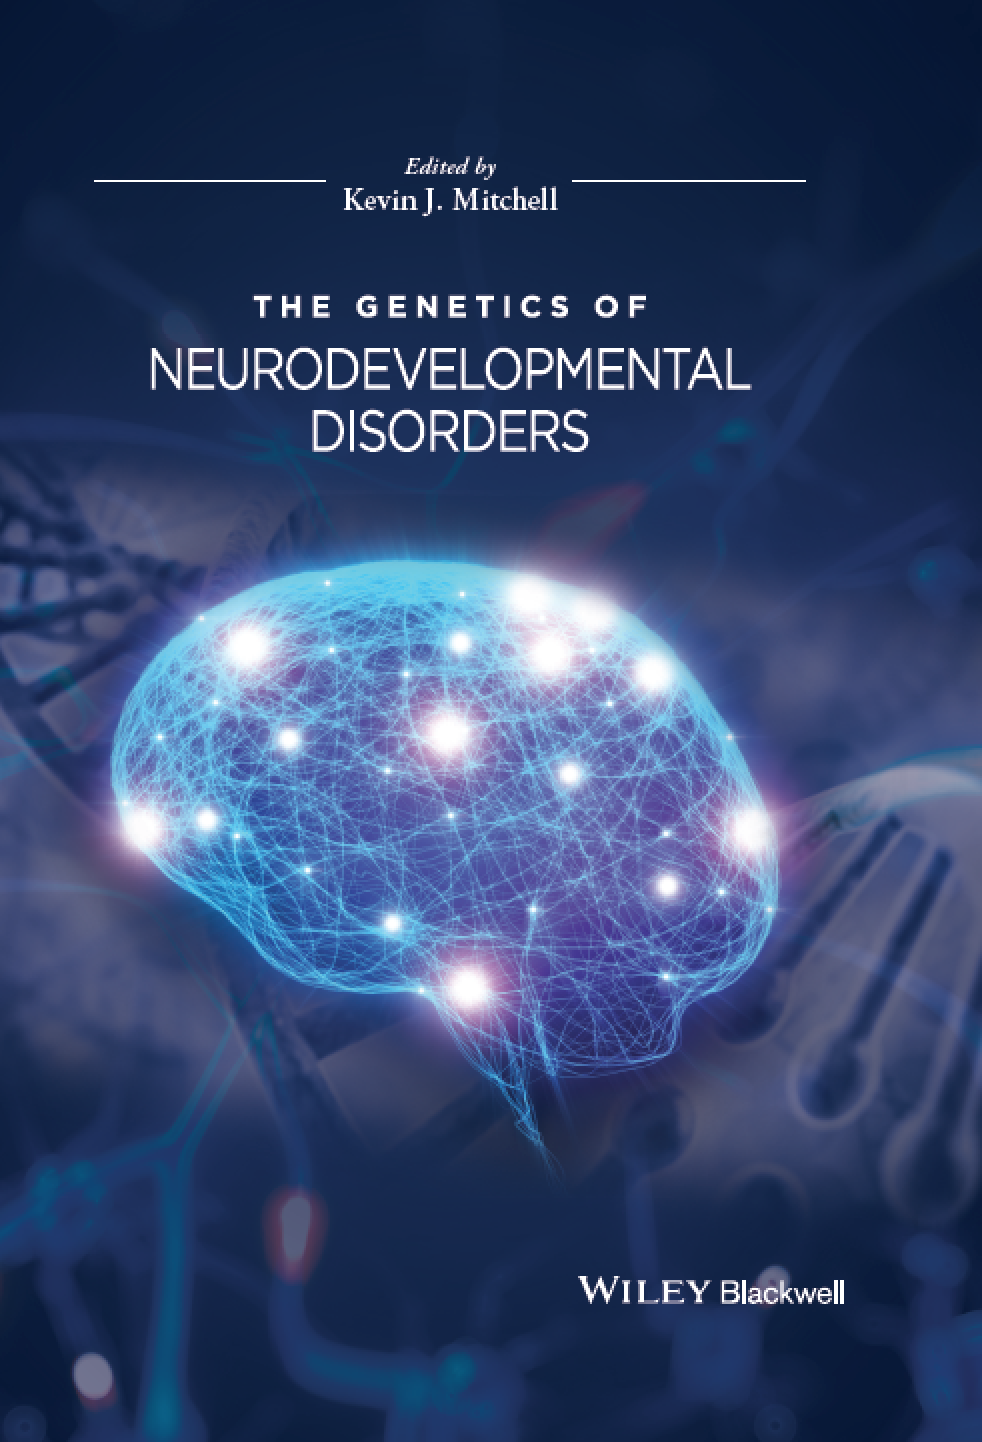 Wiring the Brain: The Genetics of Neurodevelopmental Disorders